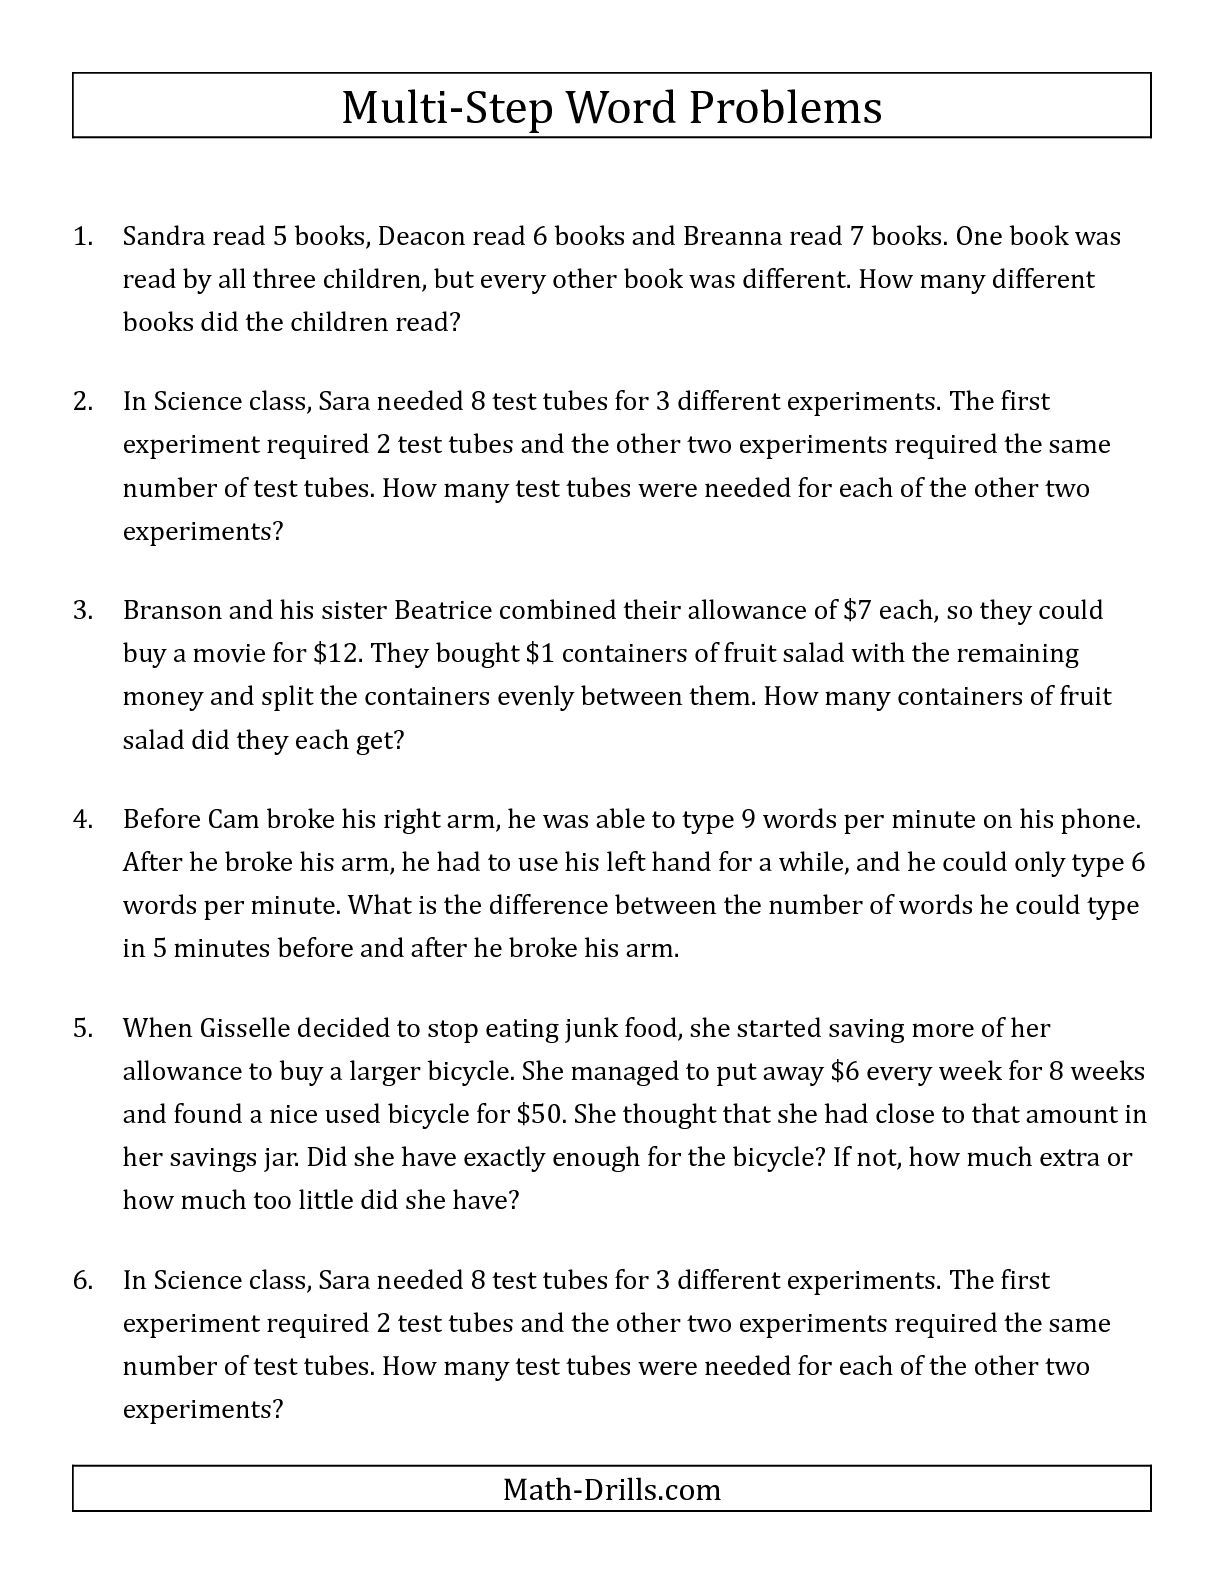 The Easy Multi-Step Word Problems math worksheet from the Word ...